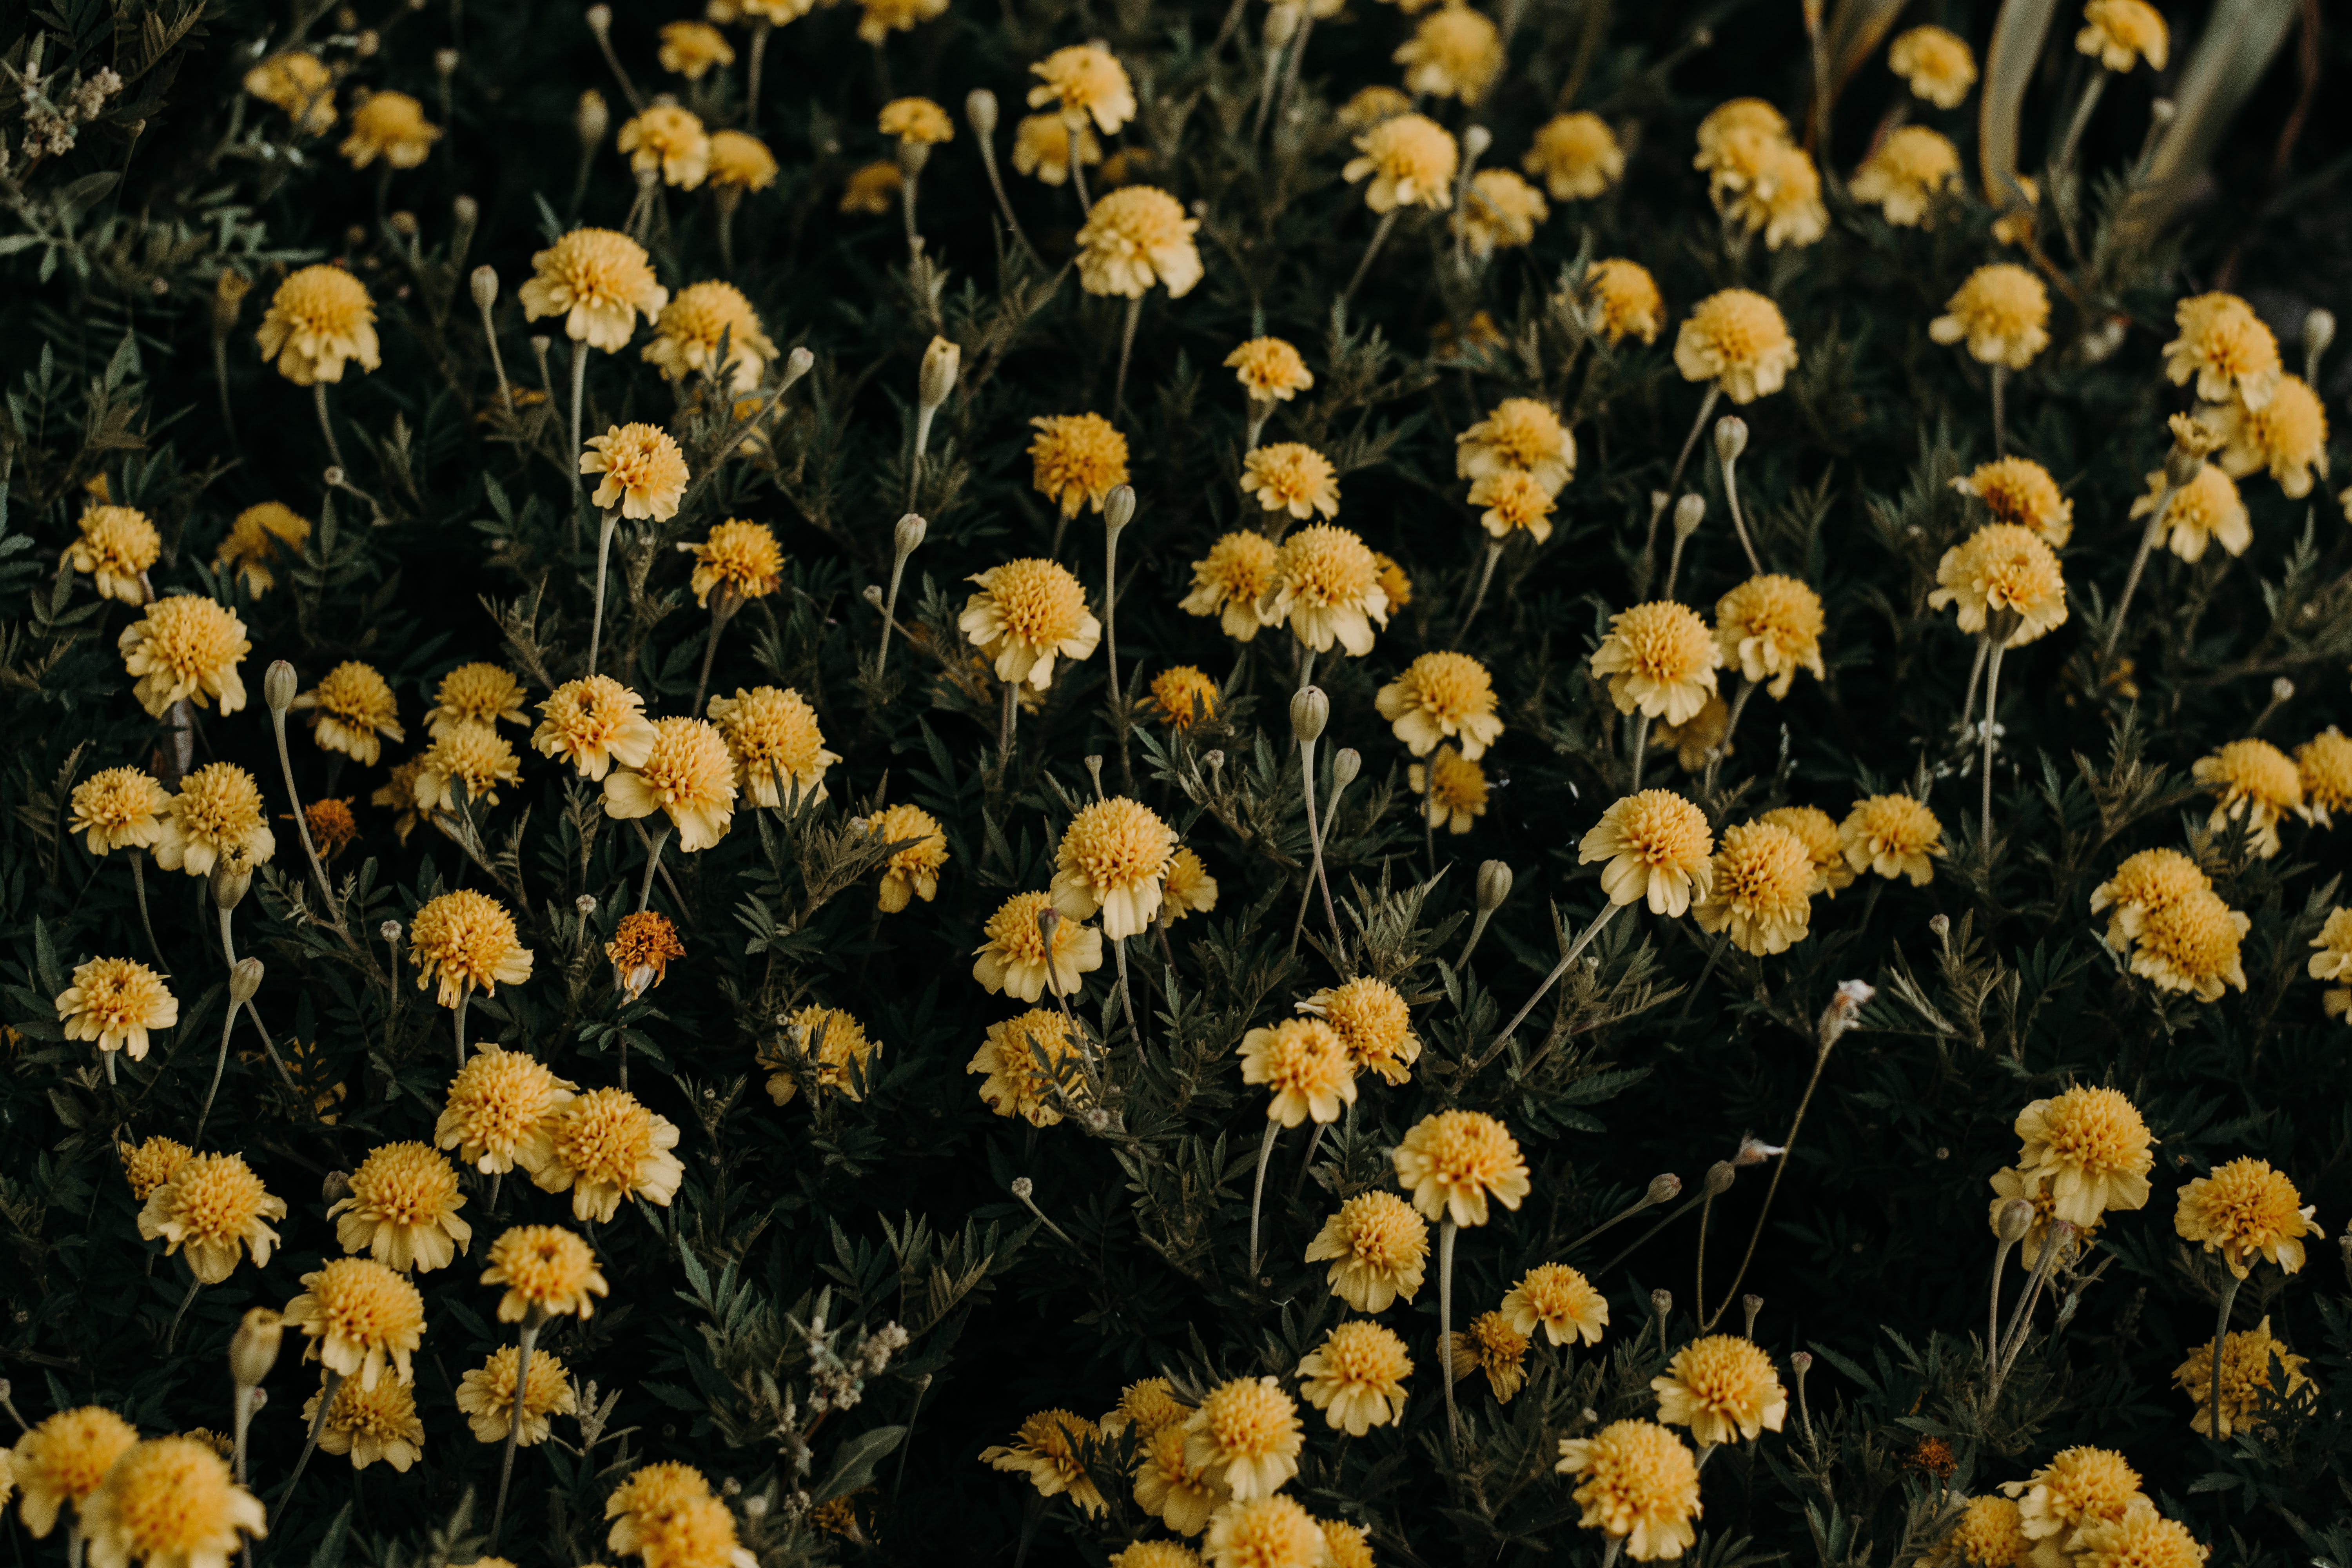 Close-Up Photography of Yellow Flowers